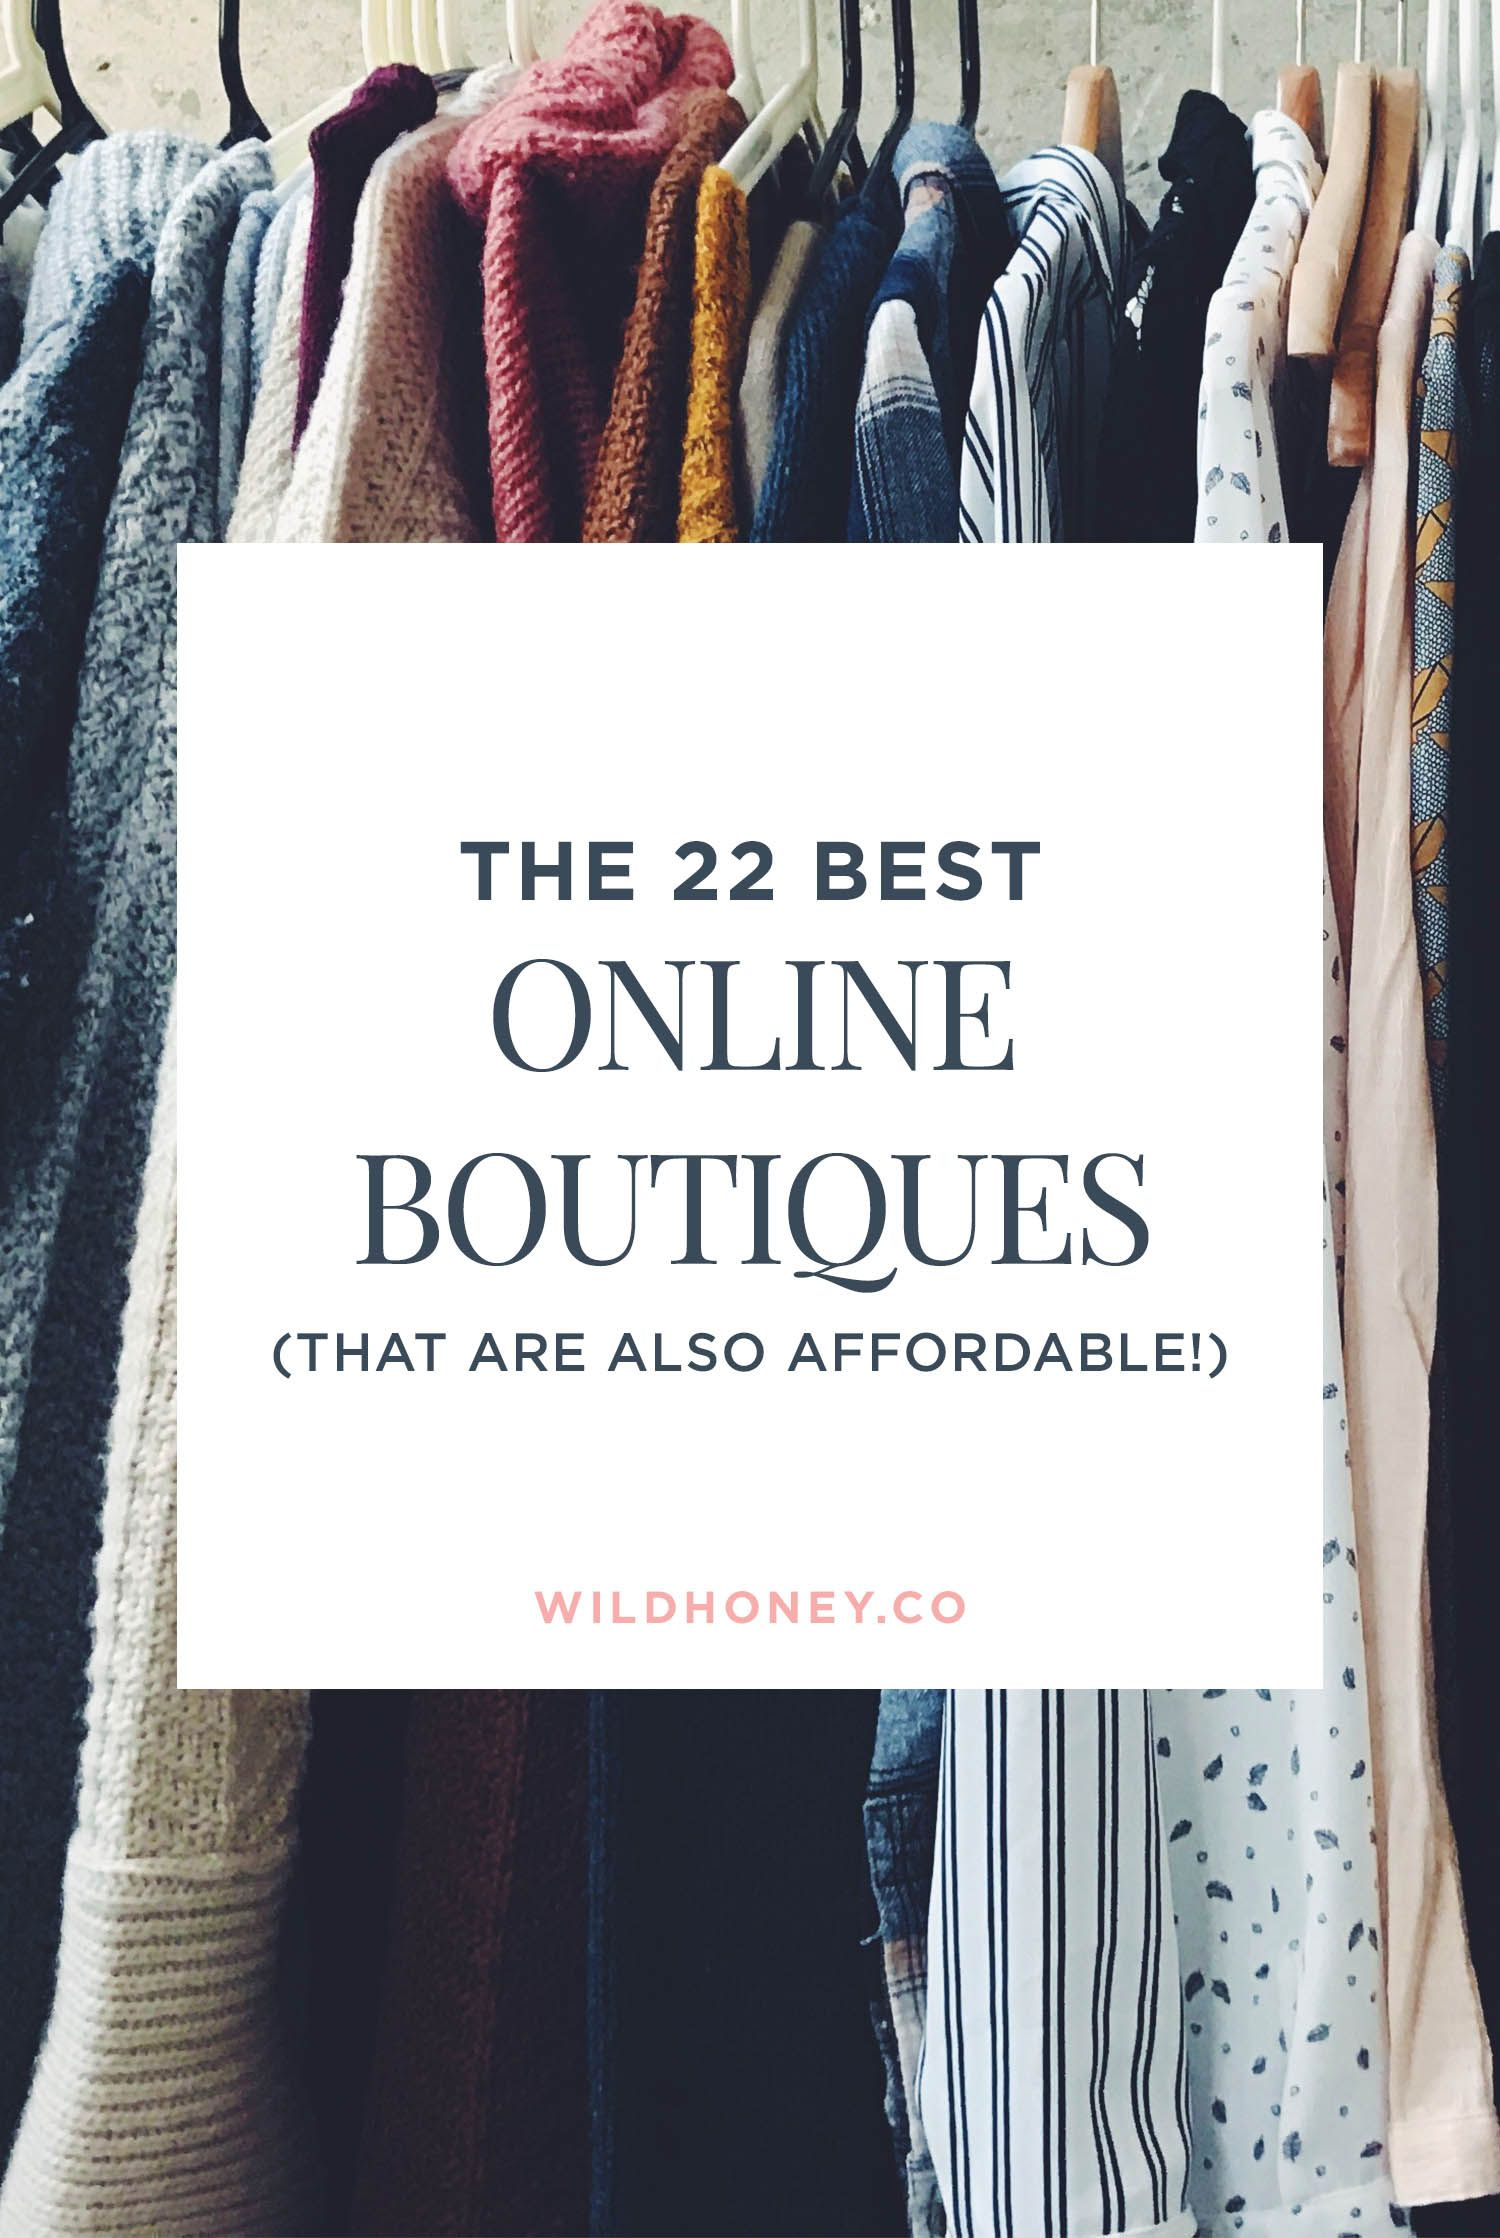 The 22 Best Online Boutiques to Buy Clothes – WILD HONEY